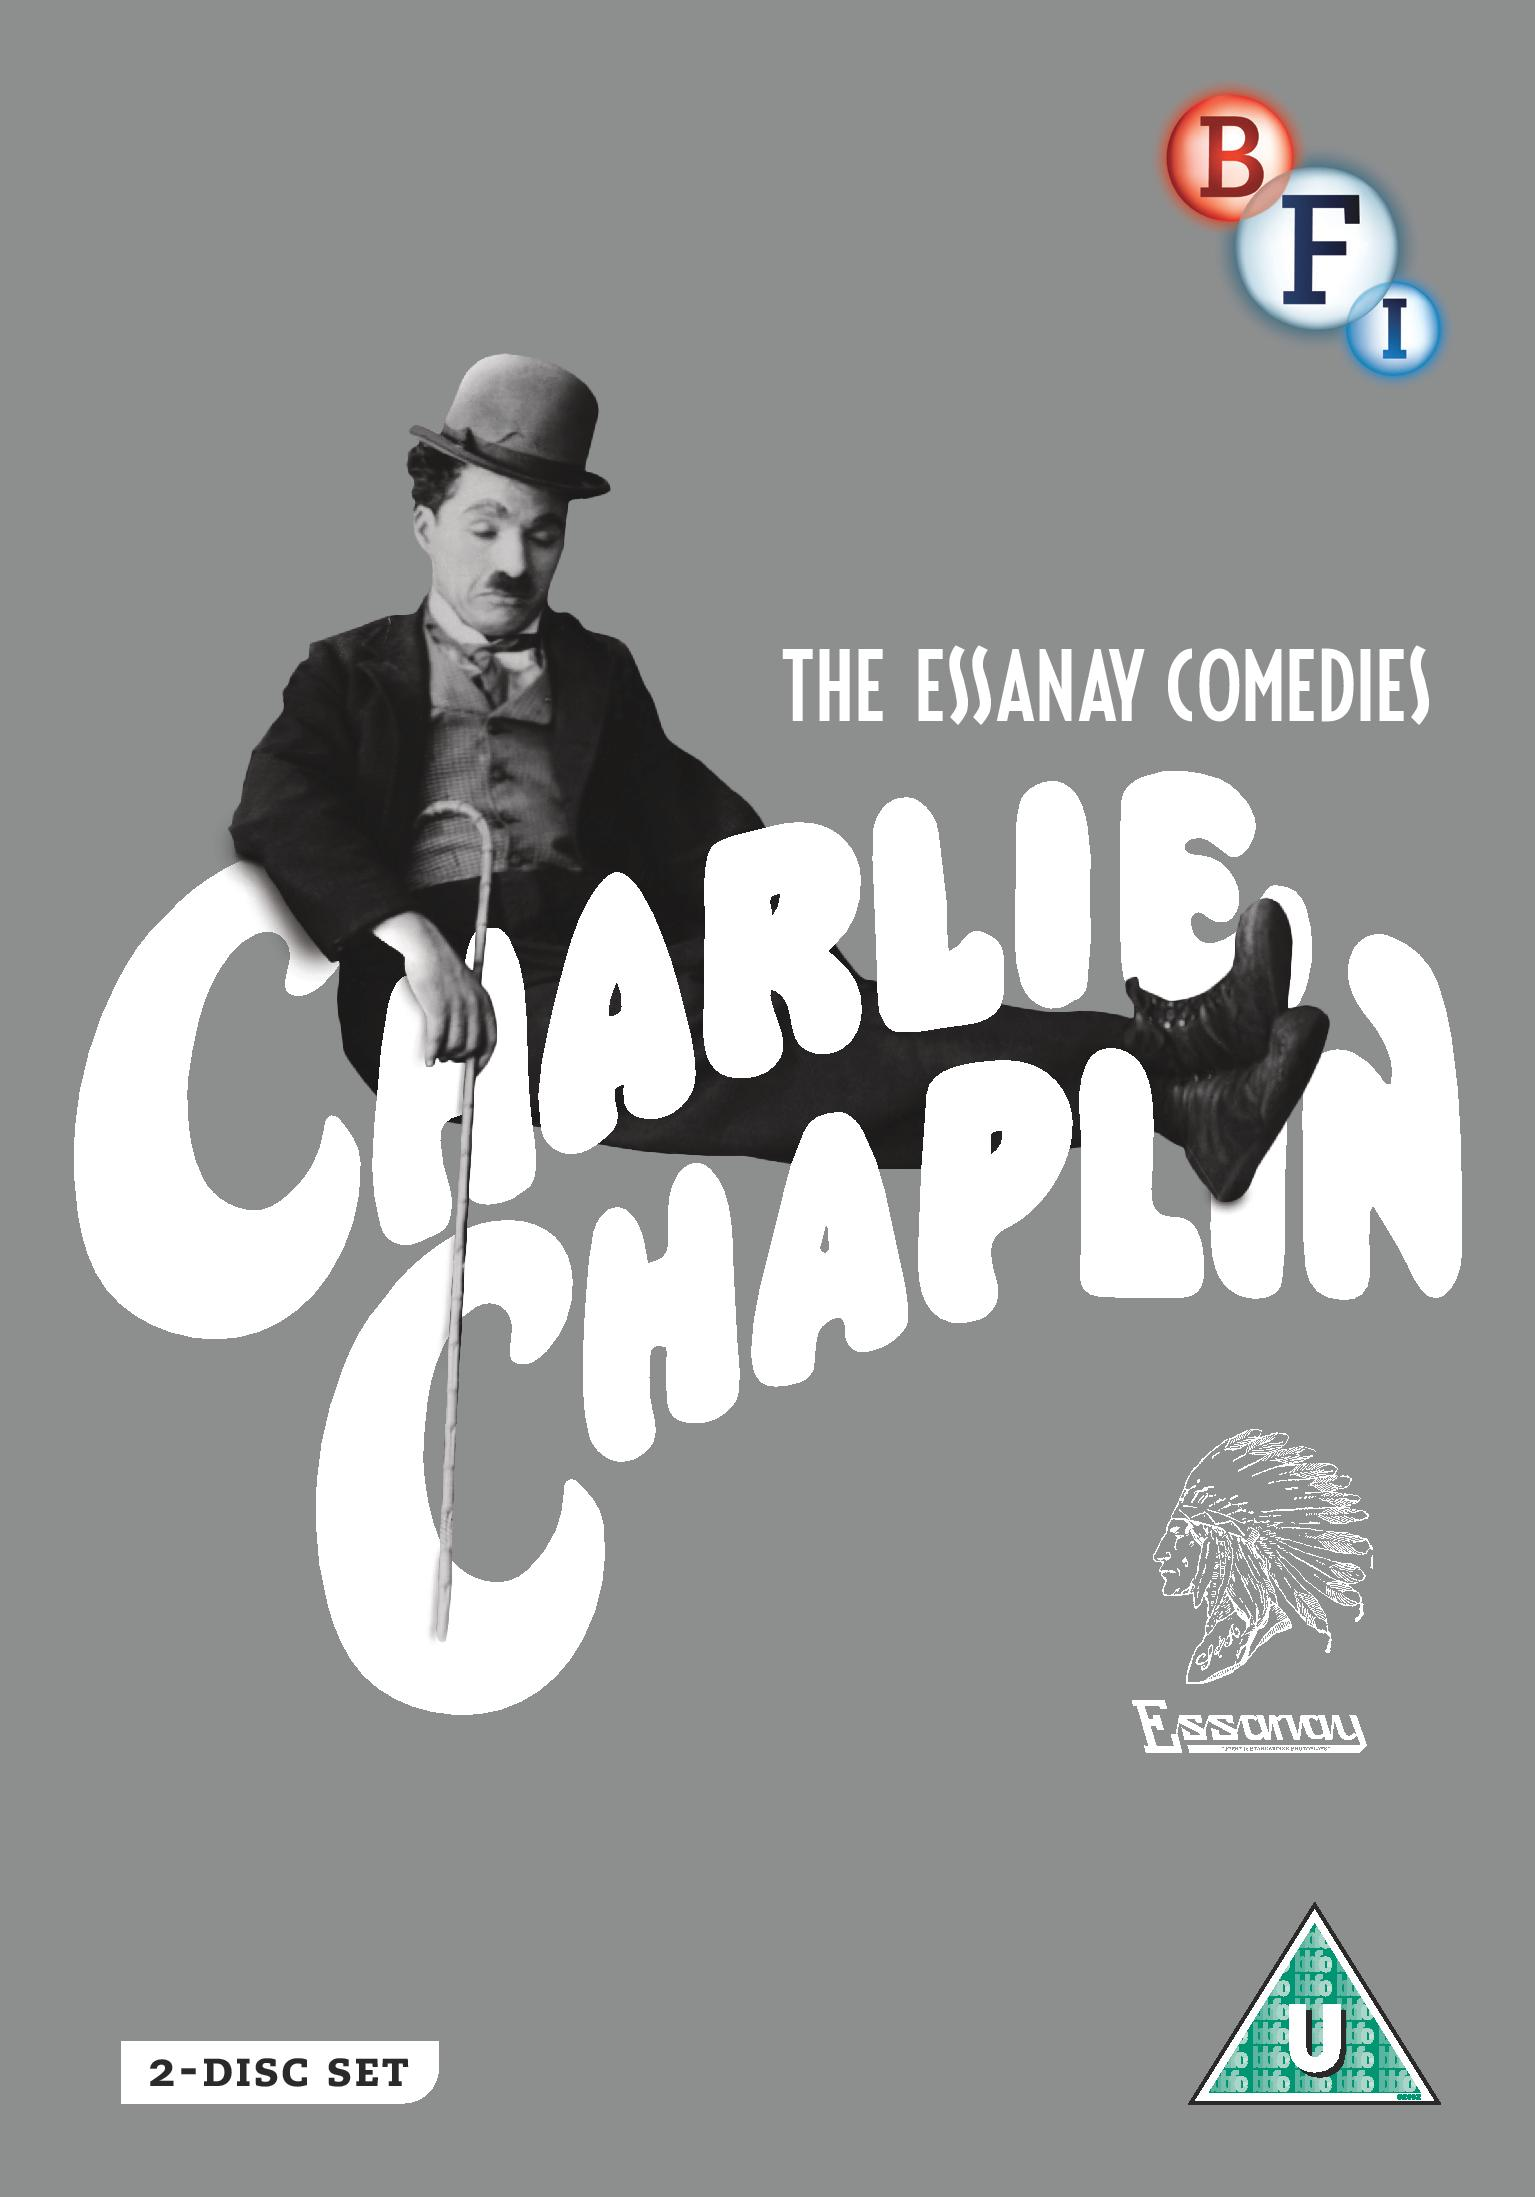 buy charlie chaplin the essanay comedies dvd set shop buy charlie chaplin the essanay comedies dvd set